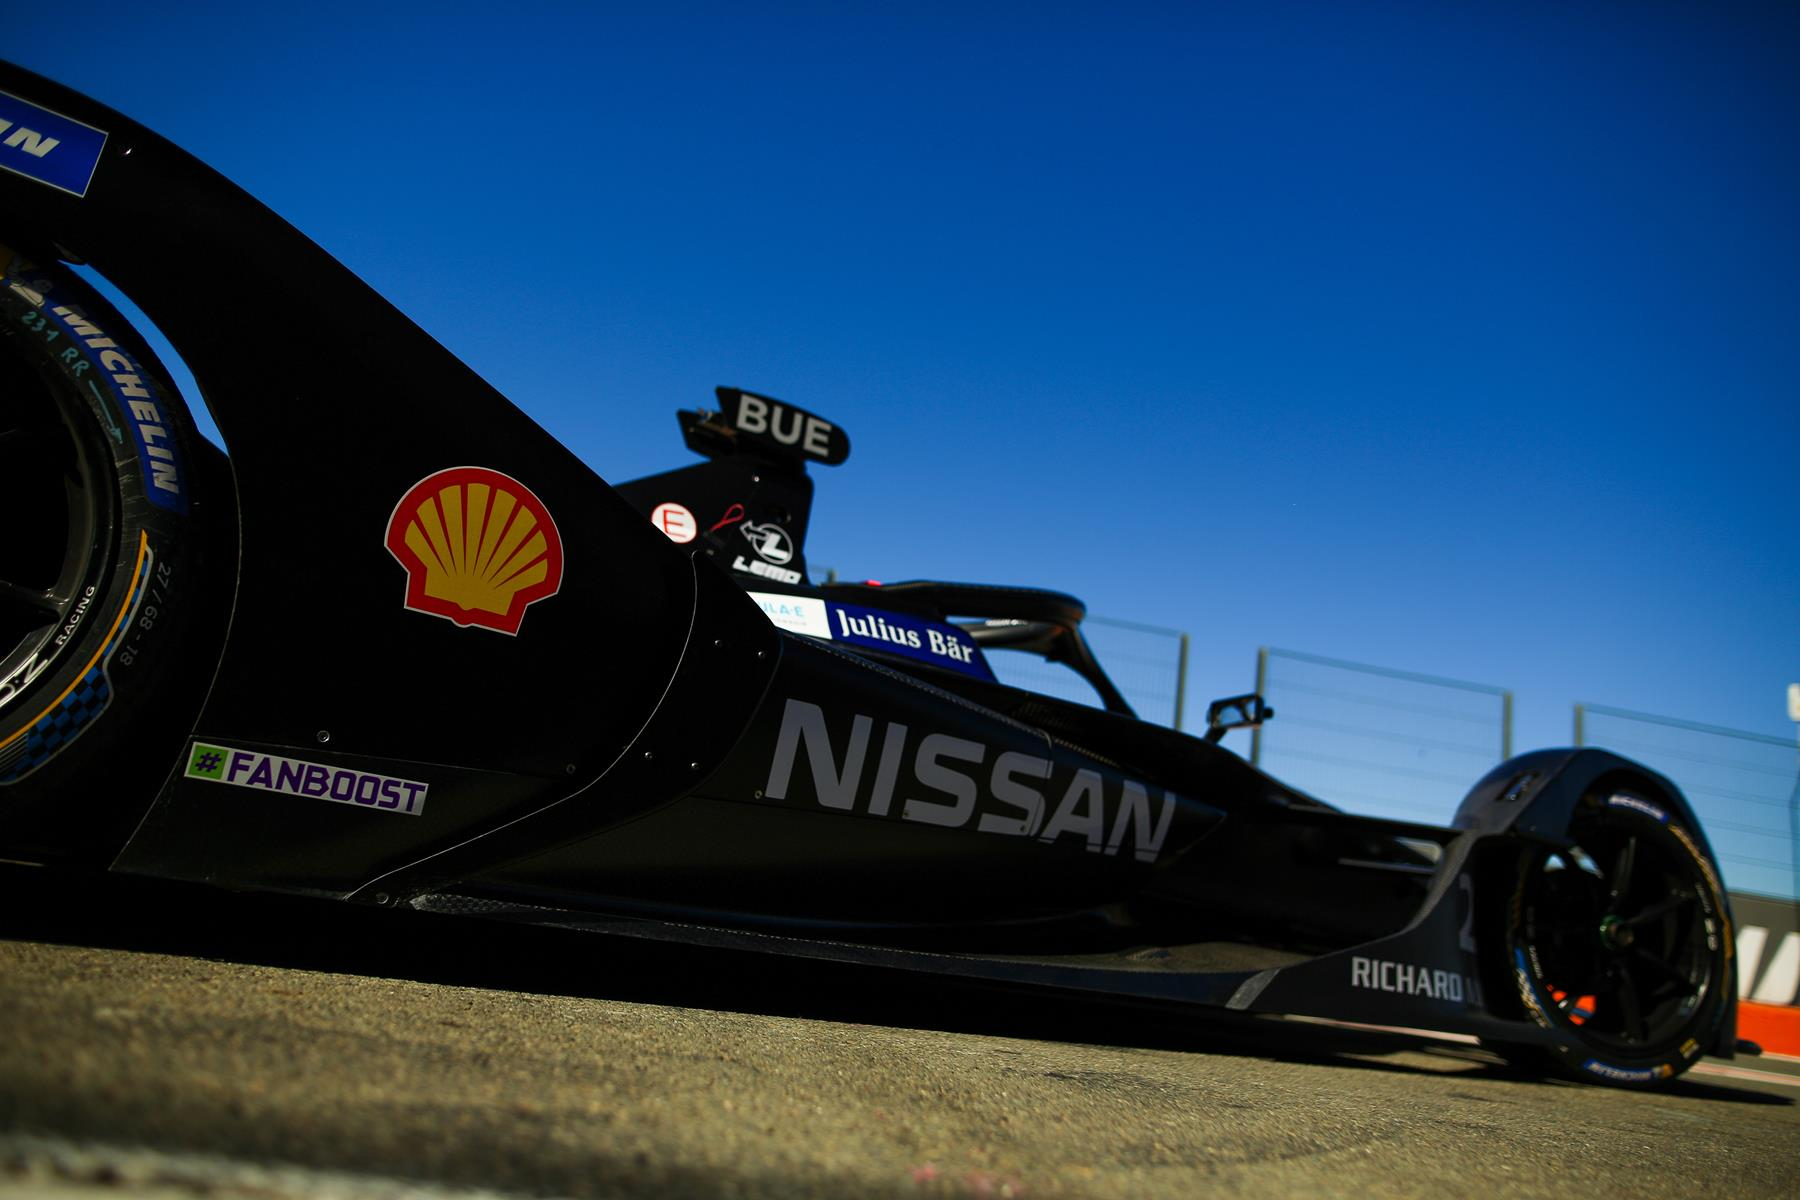 Nissan-eDams-Sebastien-Buemi-Side-view-with-Shell-Logo-Spacesuit-Media-Shivraj-Gohil-Valencia-Test-October-2019